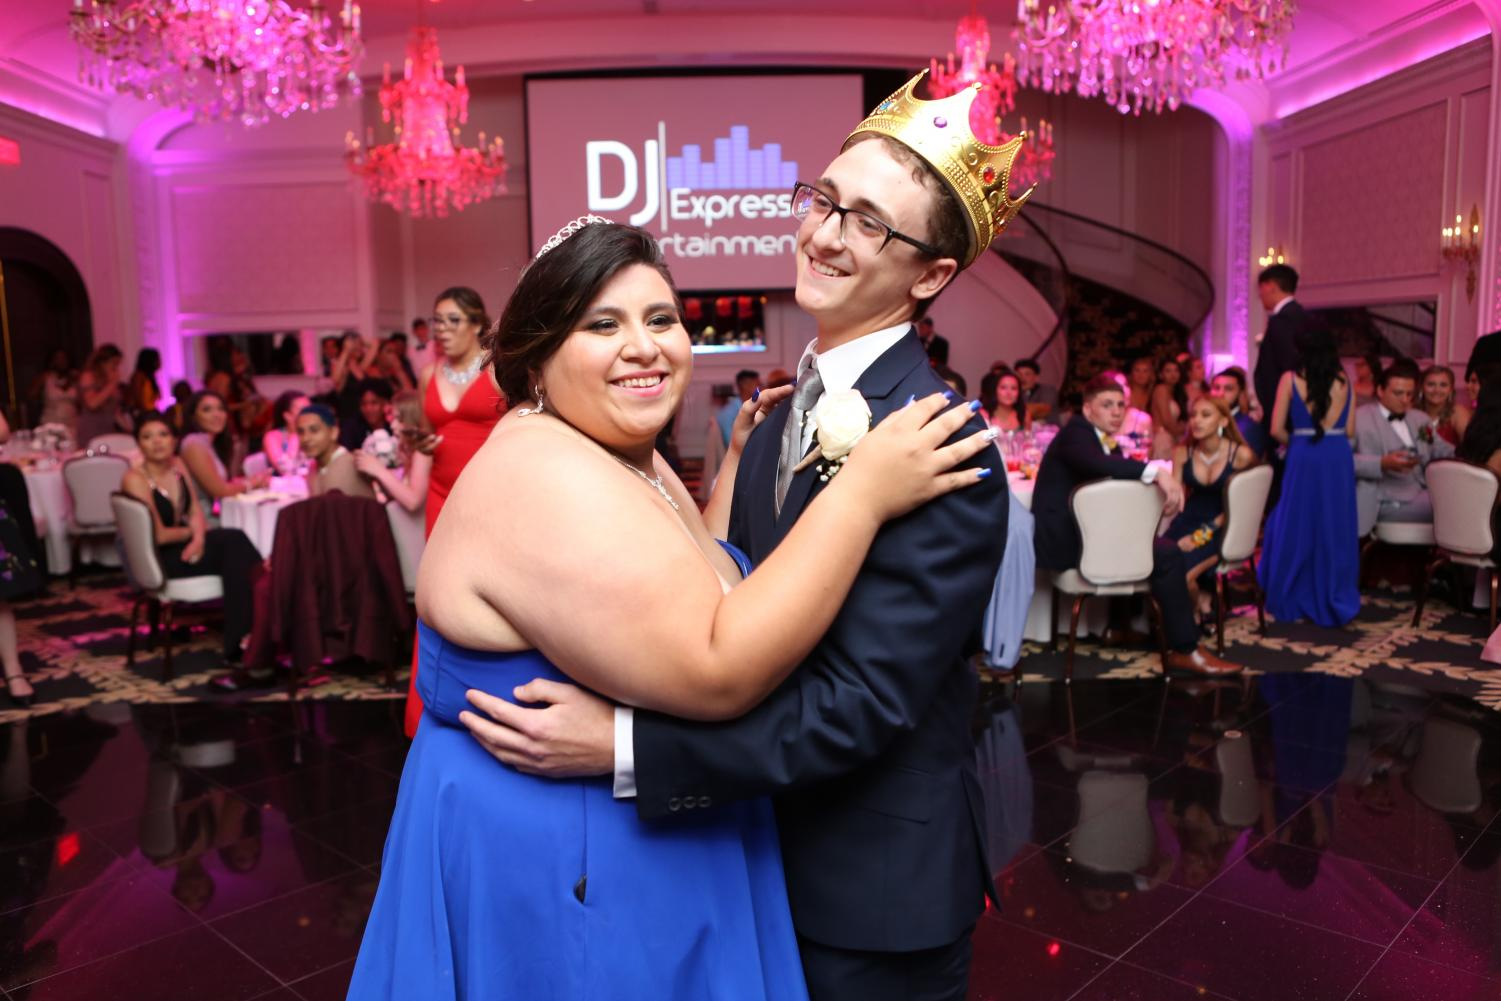 Prom+King+and+Queen+